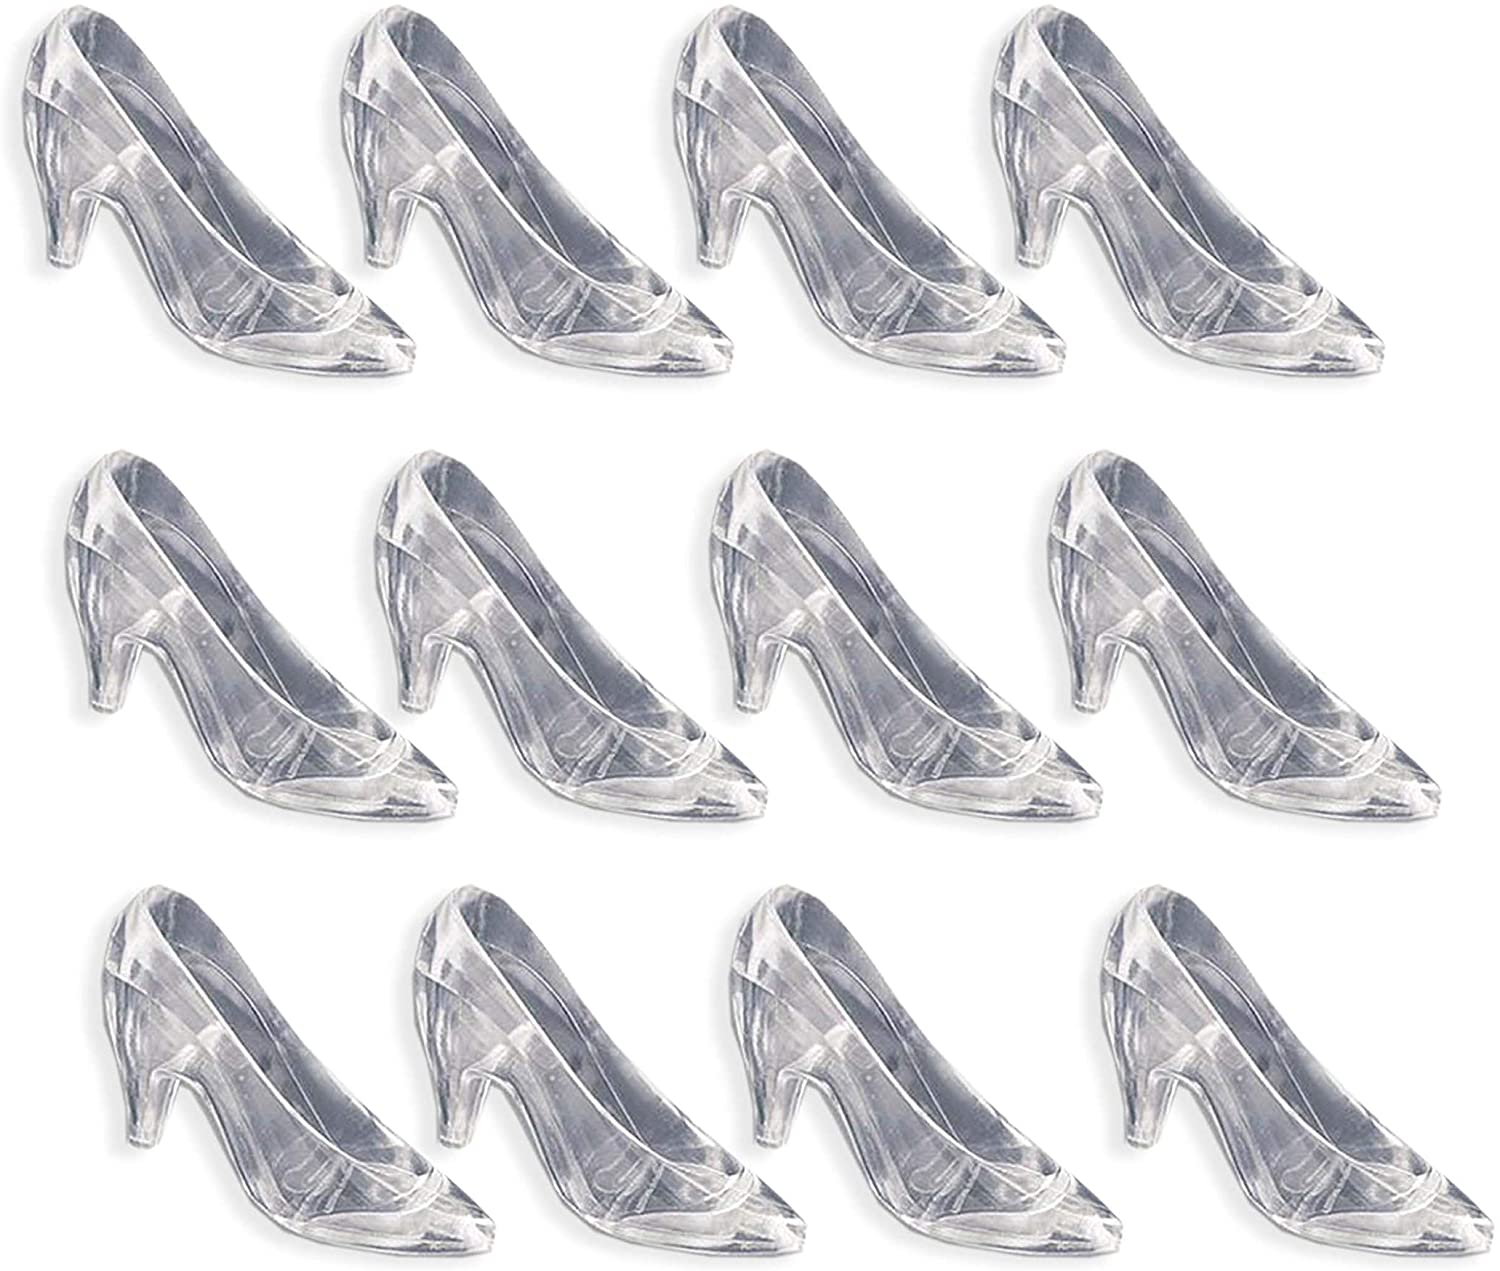 Clear Slippers Cinderella Heels Party Favors Wedding Decoration 12 Pack Plastic Glass Slippers